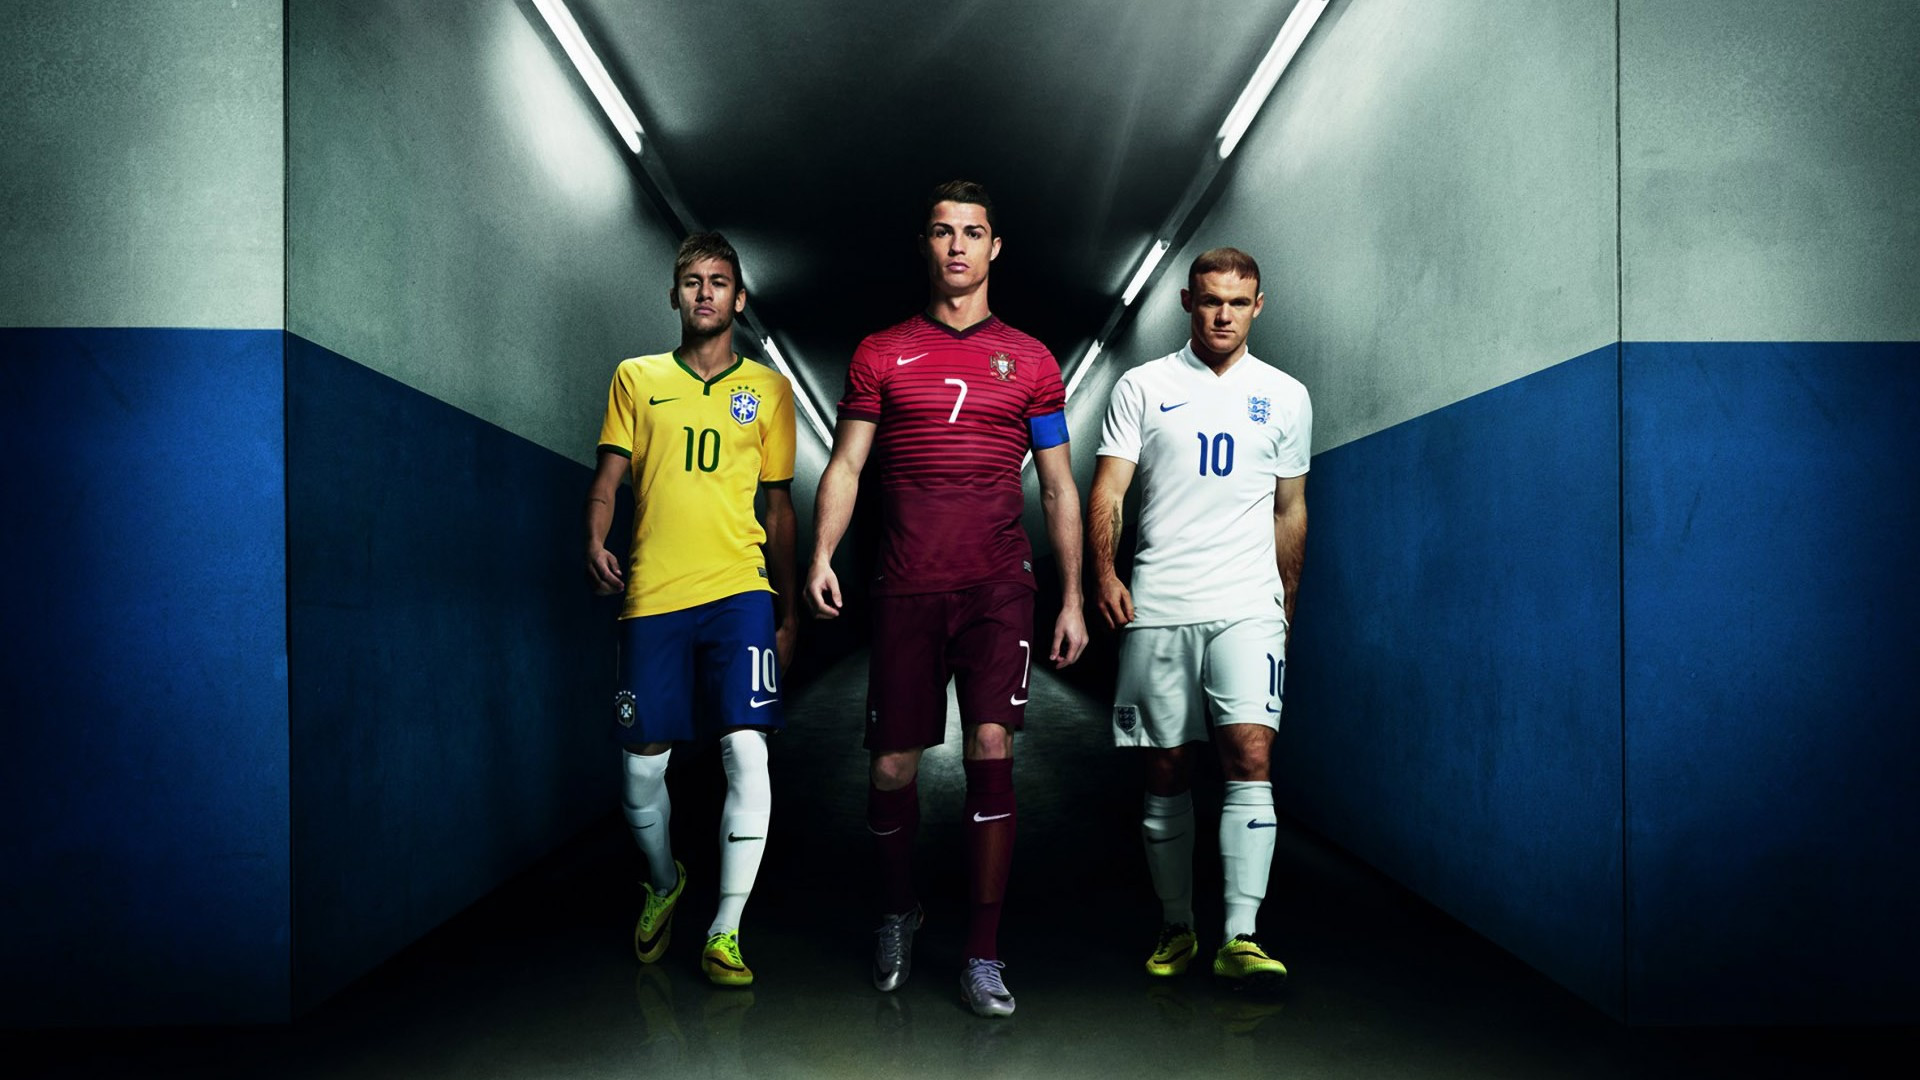 Neymar, Ronaldo, and Rooney – Nike wallpaper